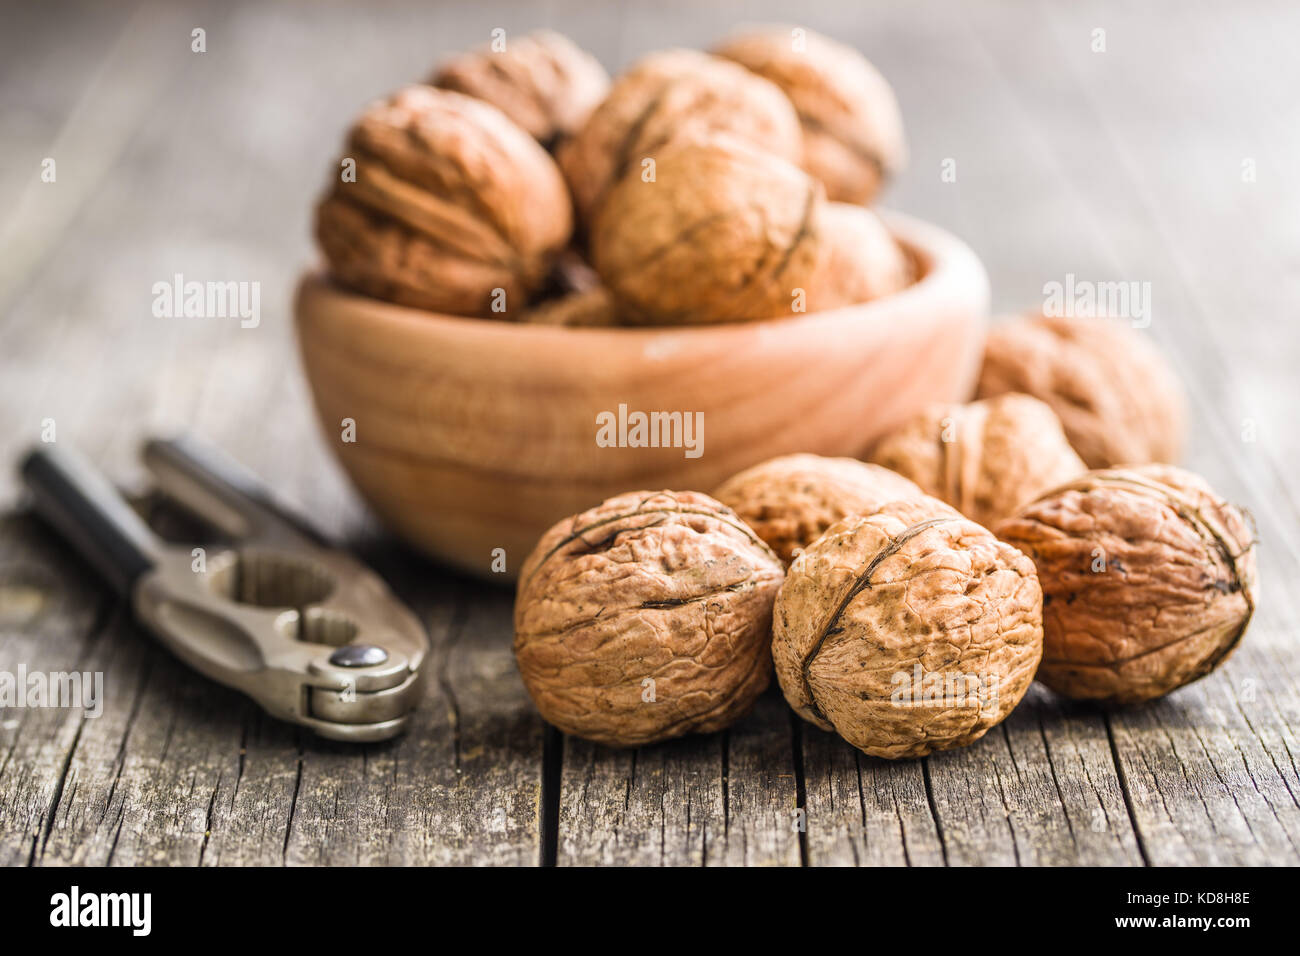 Tasty dried walnuts and nutcracker on old wooden table. - Stock Image